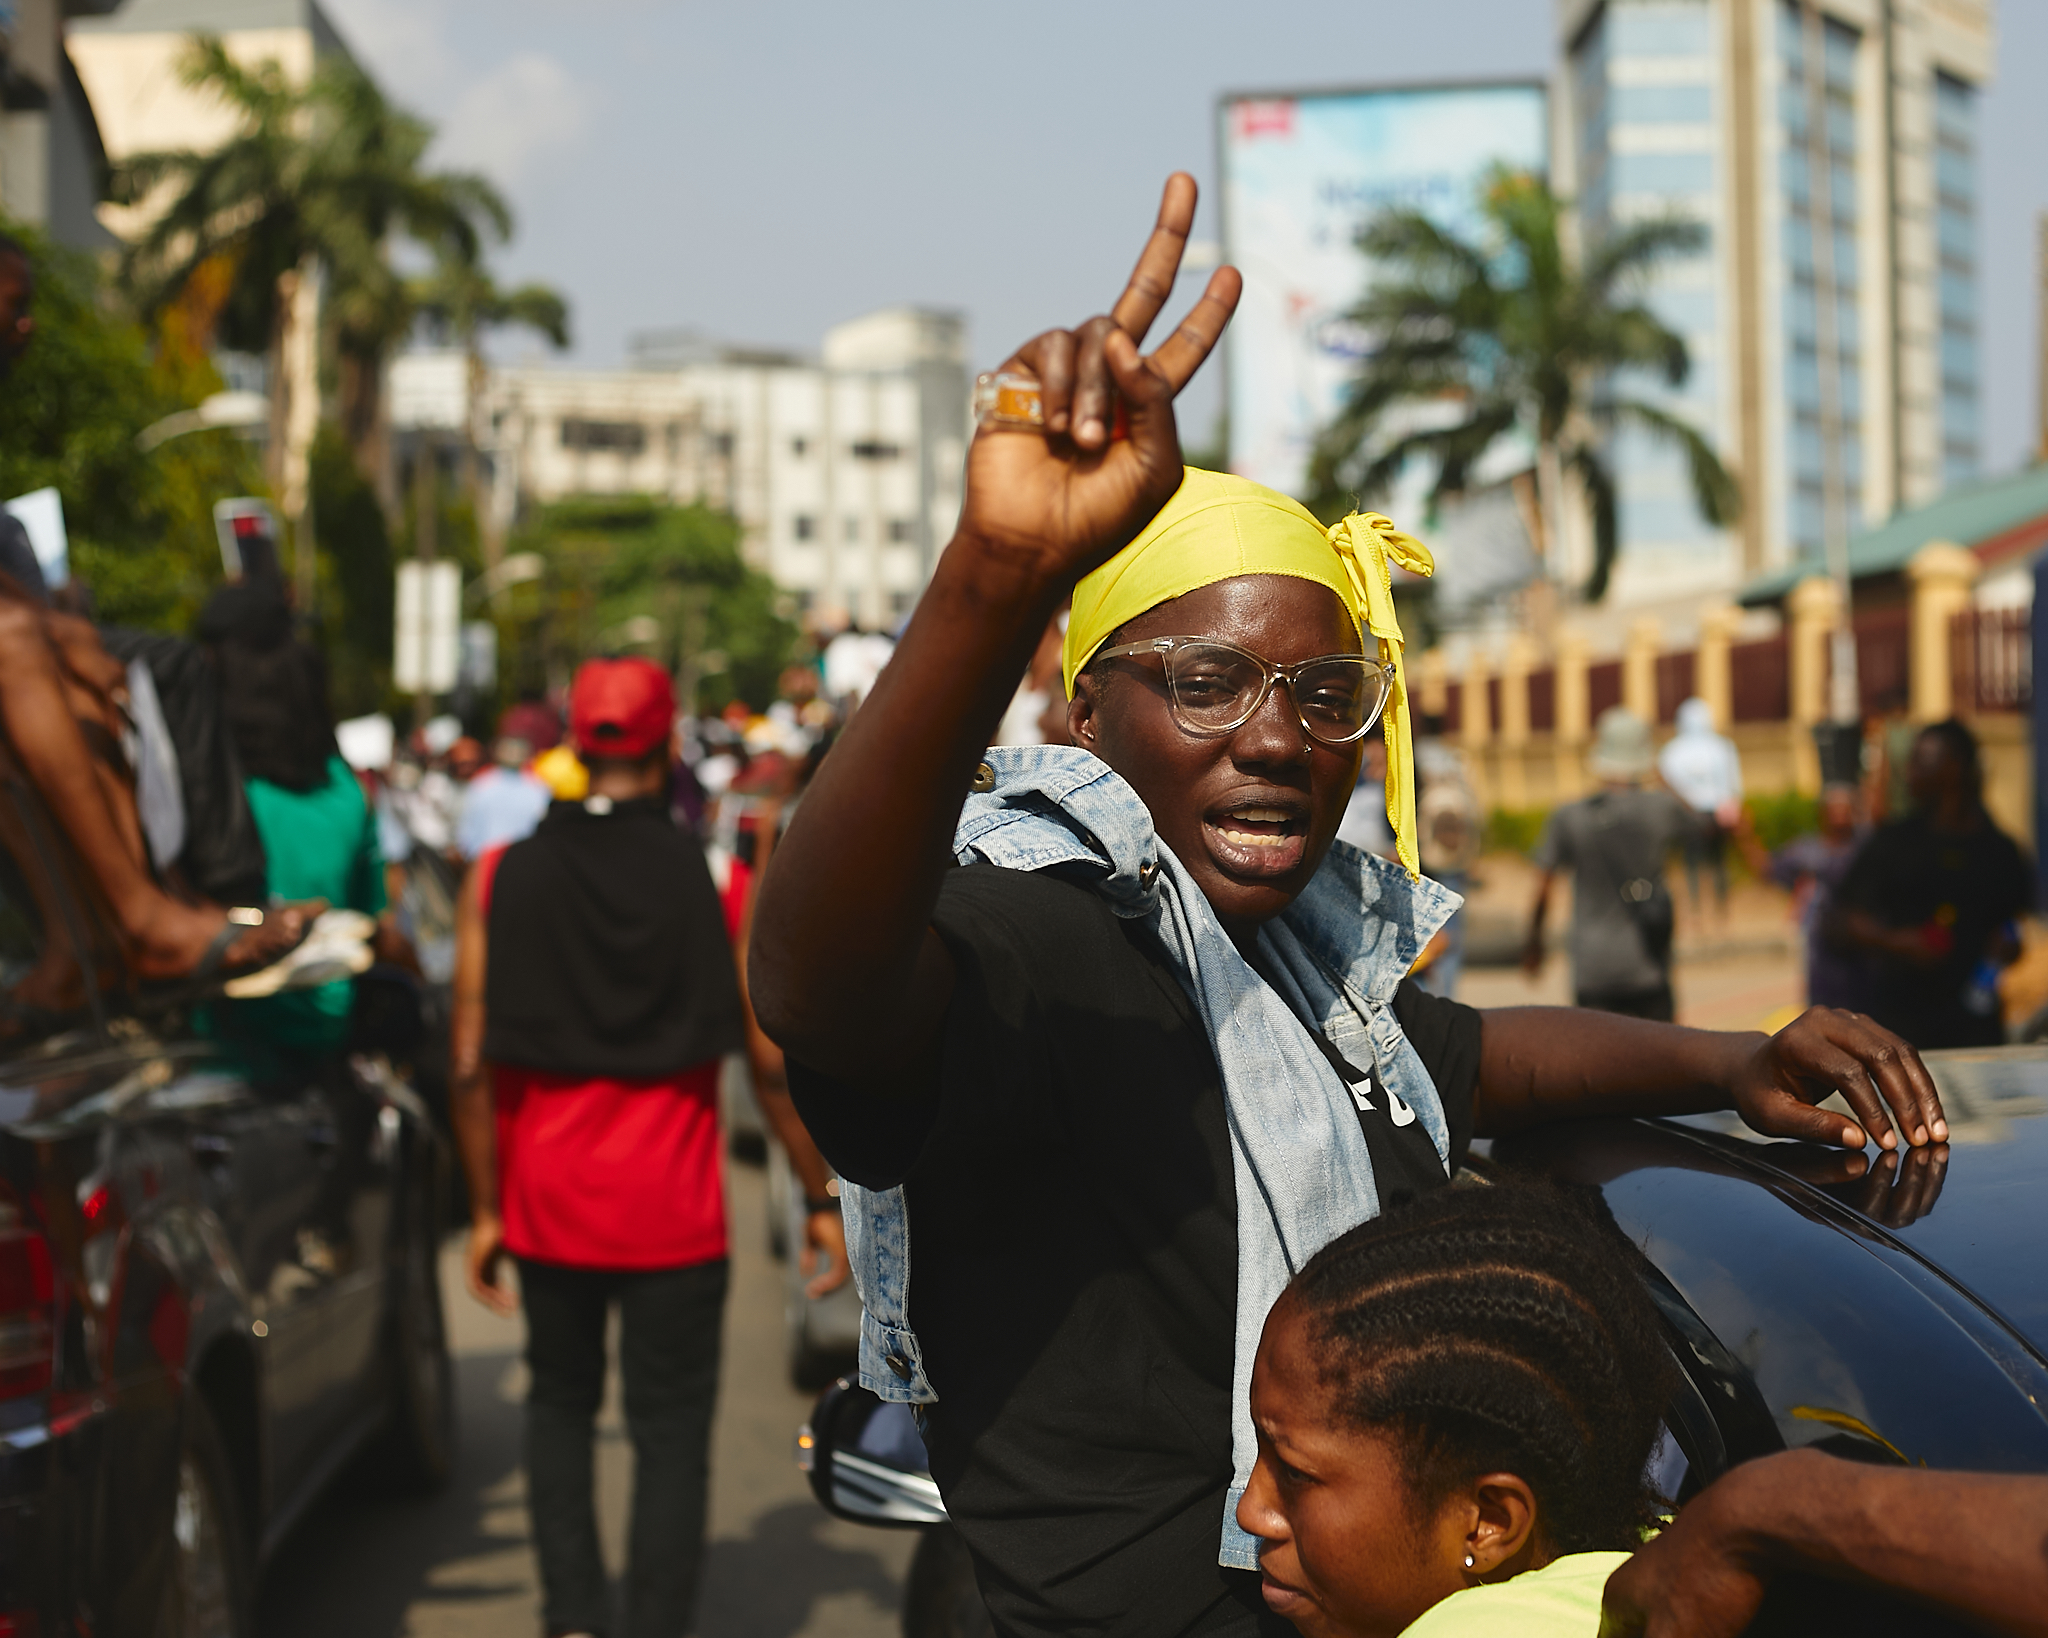 Protester at anti-SARS protest in Lagos